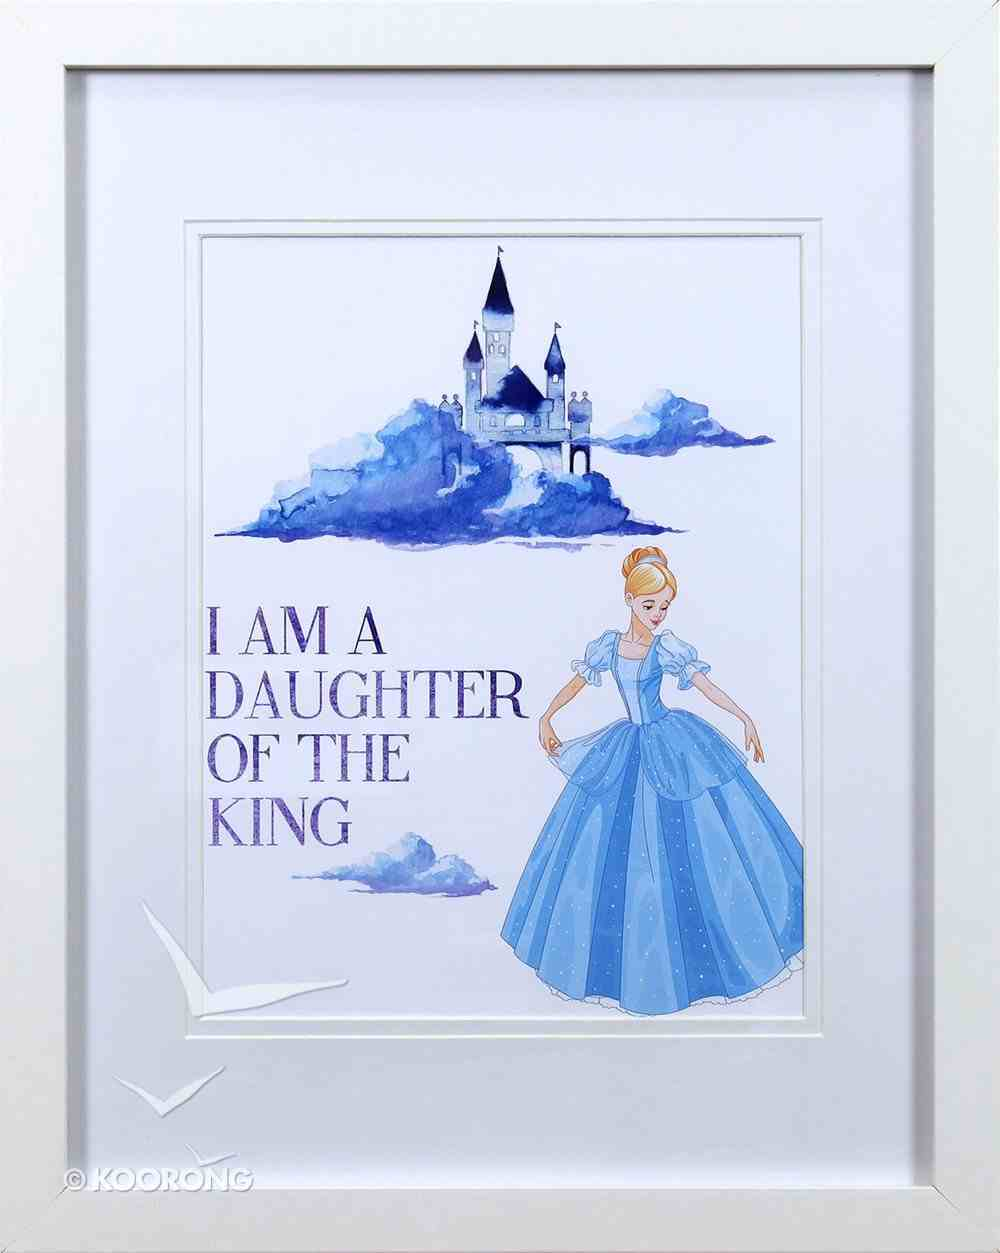 Framed Children's Print Watercolour Princess I Am a Daughter of the King Plaque